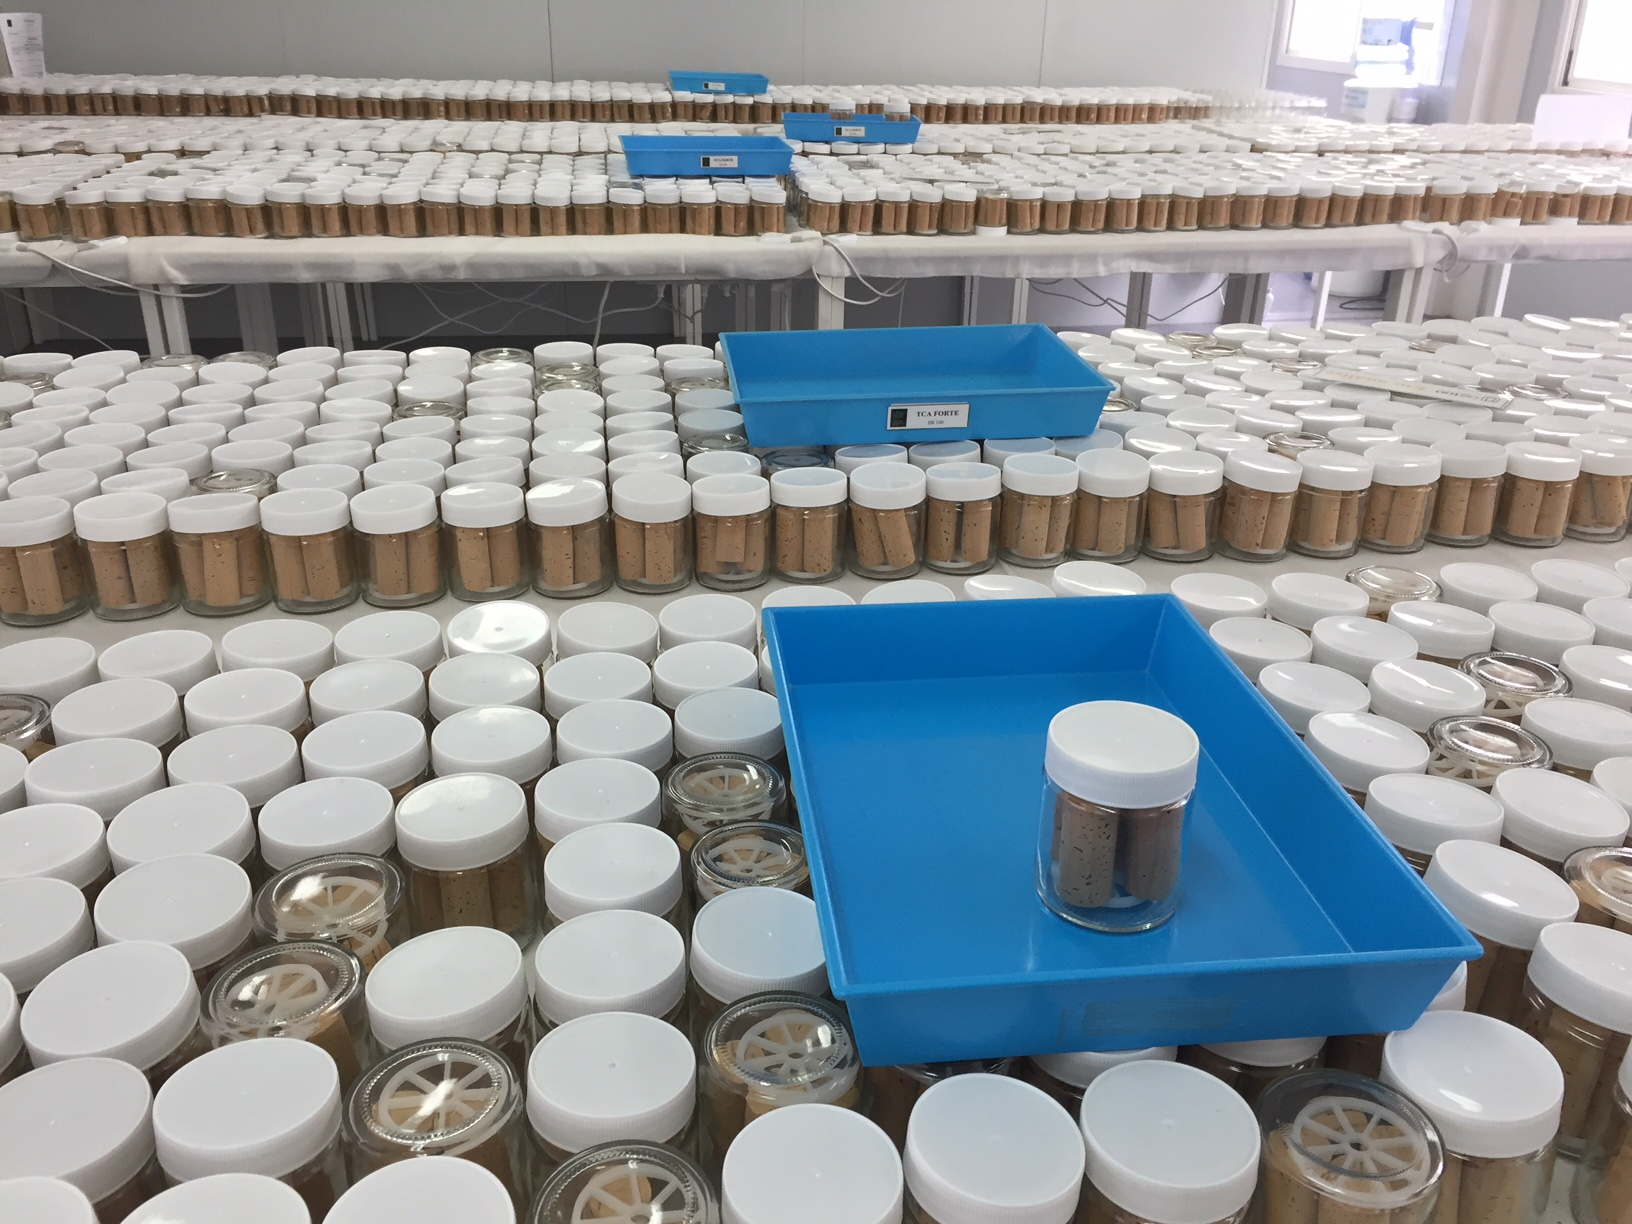 corks being tested for any TCA taint; any guilty samples are placed on the blue trays